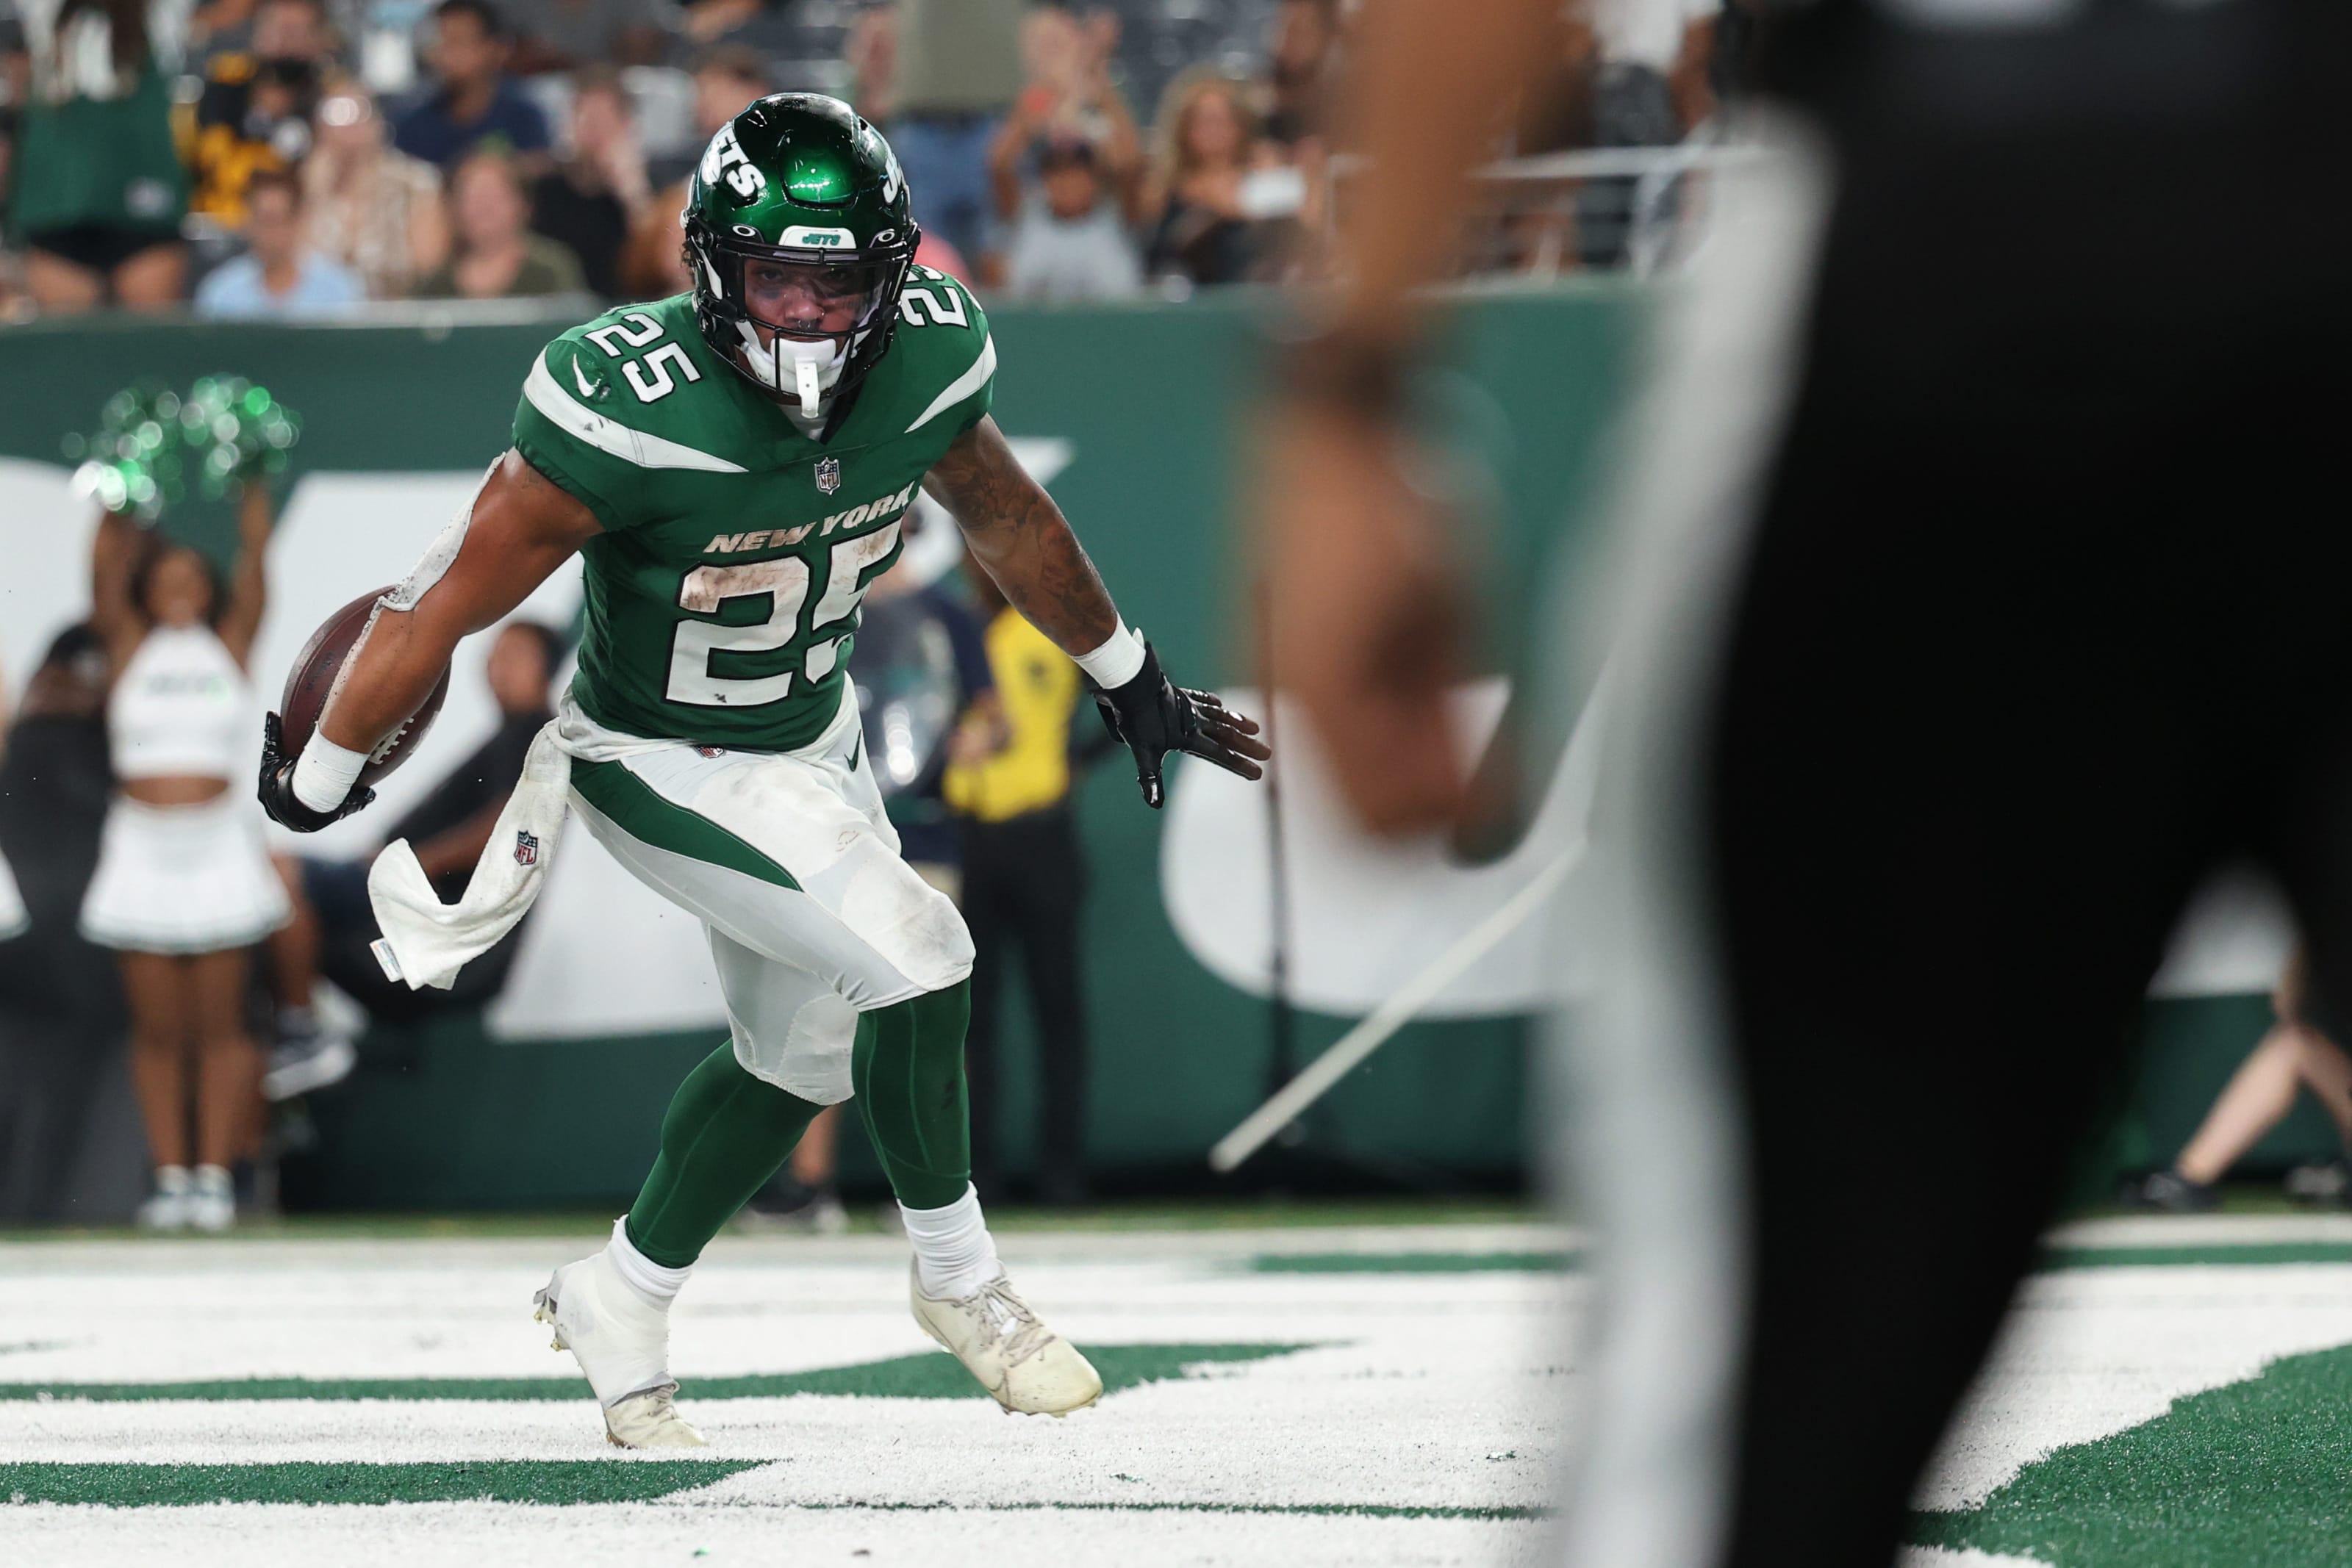 https%3A%2F%2Ffansided.com%2Fwp content%2Fuploads%2Fgetty images%2F2018%2F08%2F1336800895 5 breakout fantasy football stars to pick up for Week 1